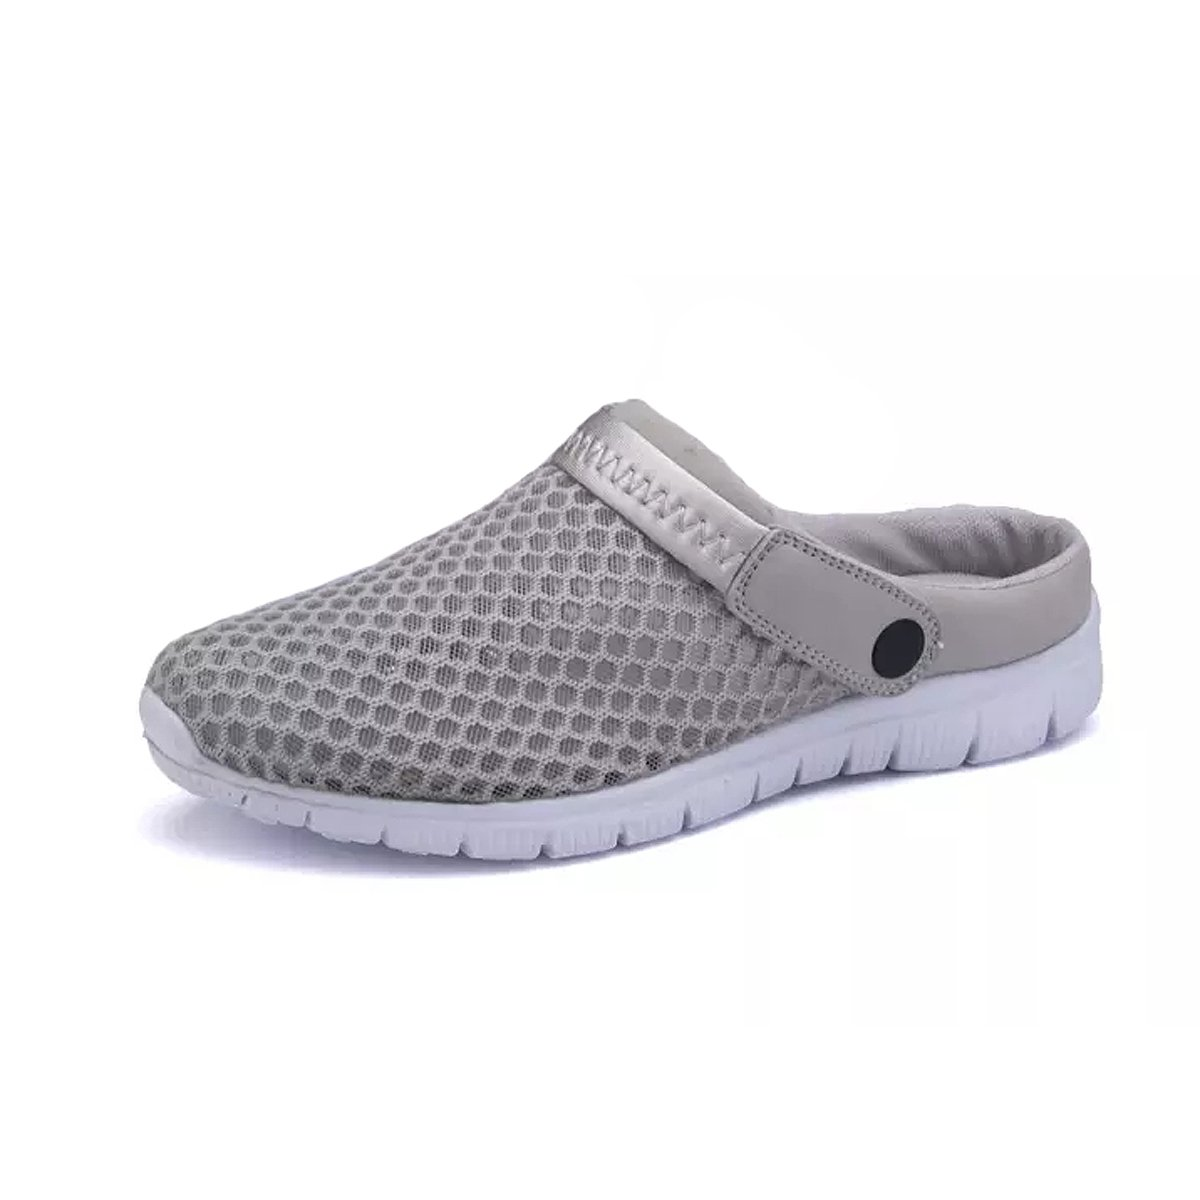 CCZZ Men's and Women's Summer Breathable Mesh Beach Sandals Slippers Quick Drying Water Shoes Amphibious Slip On Garden Shoes B07C2WB4Y2 US 9=EU 43|Grey